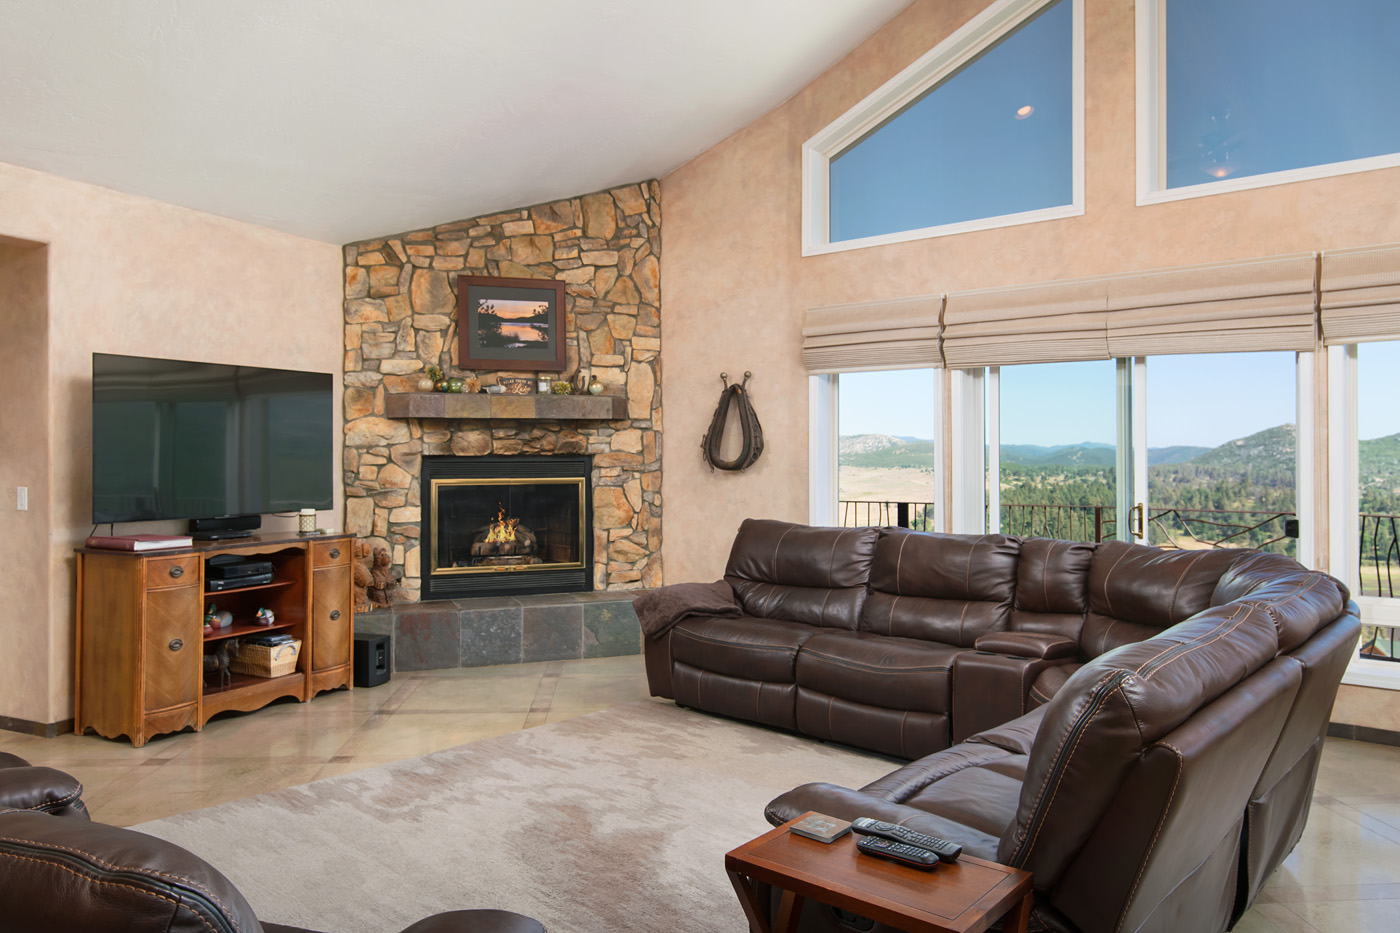 Fireplace and view